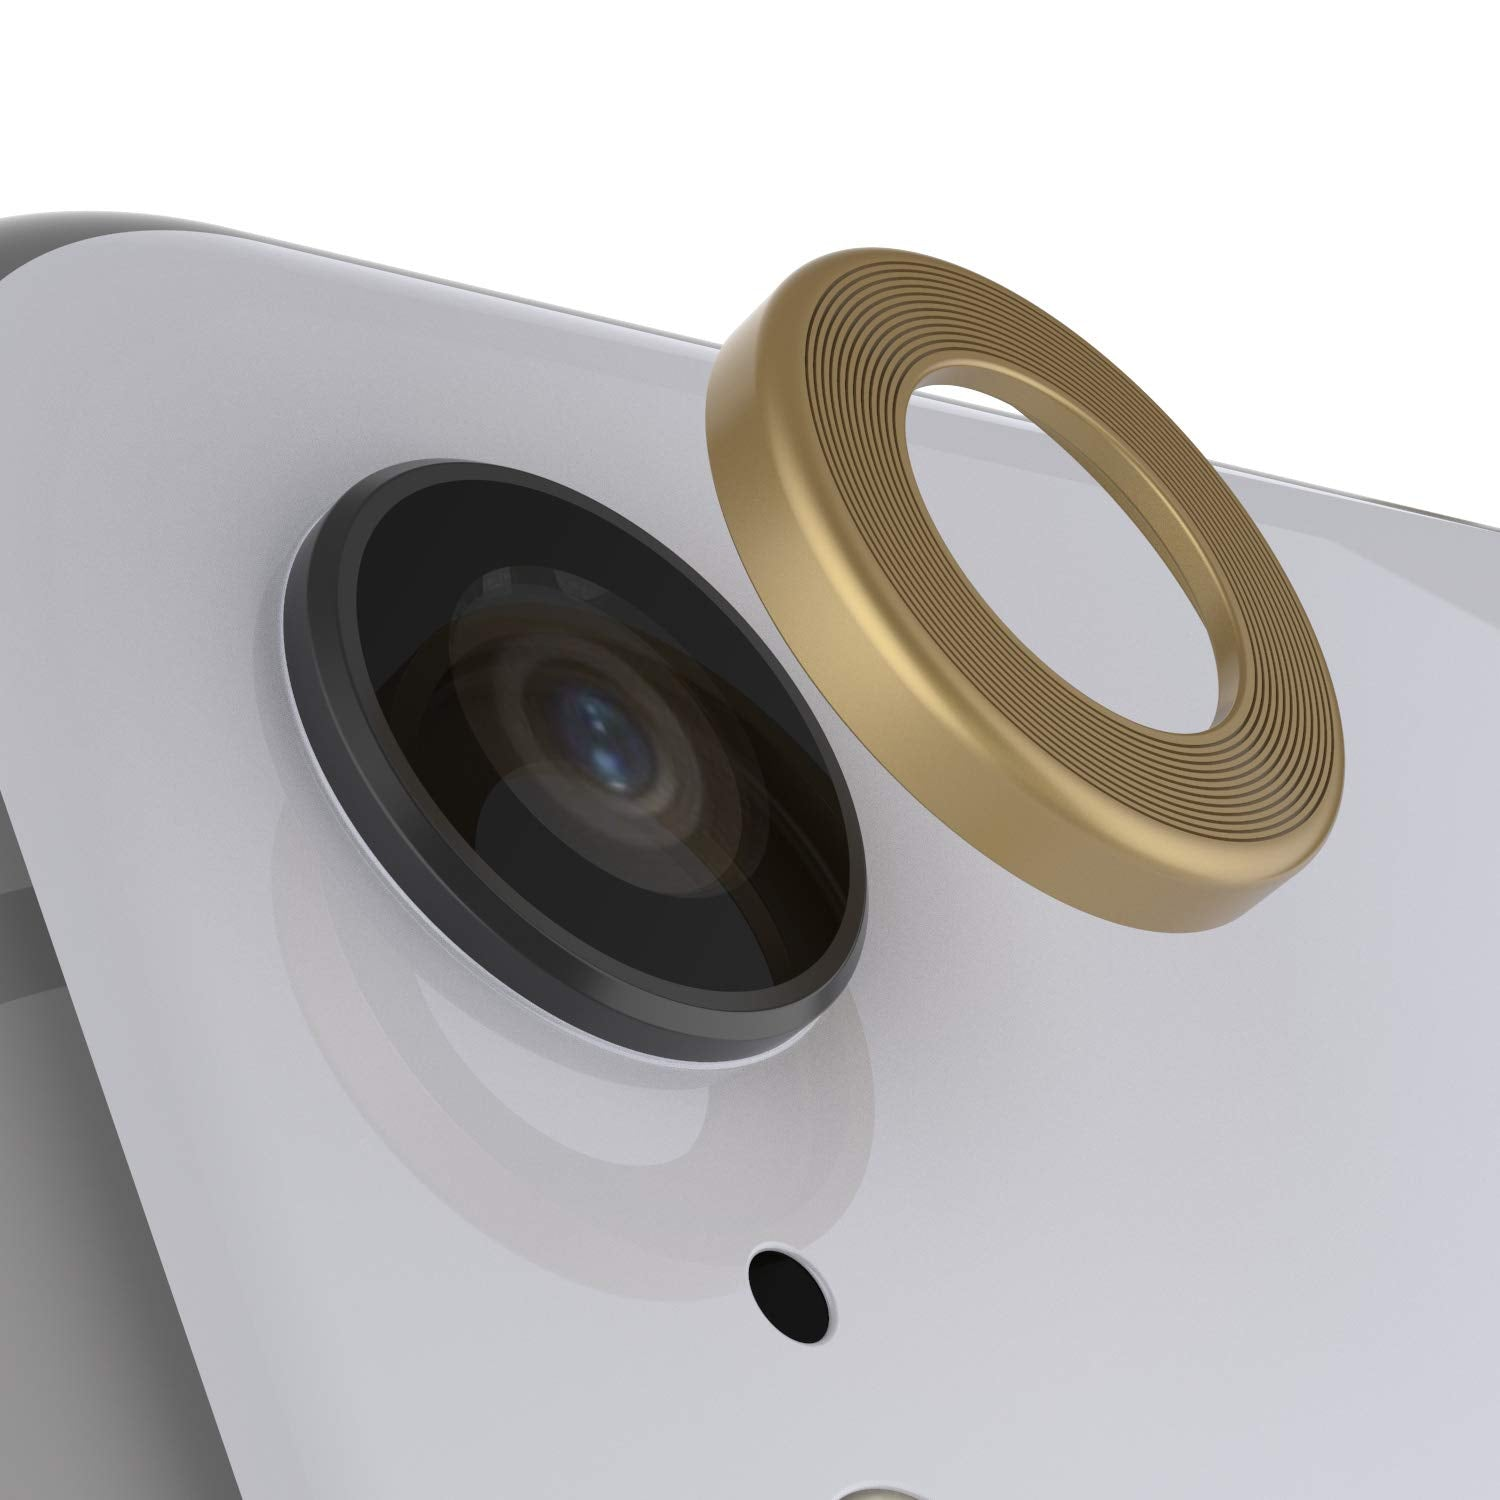 Punkcase iPhone XR Camera Protector Ring [Gold]